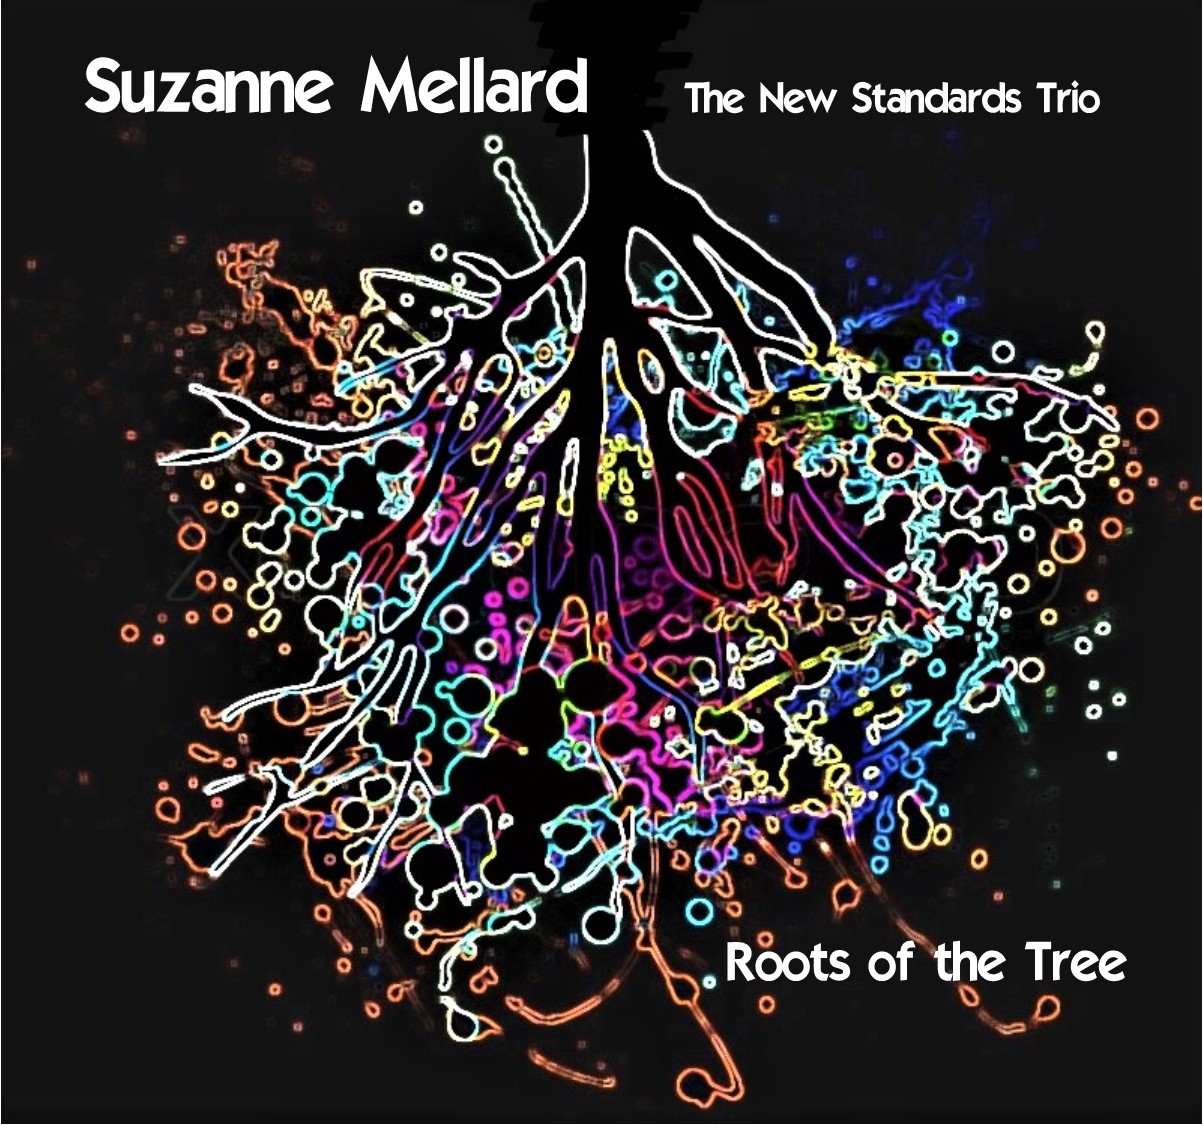 Suzanne Mellard + The New Standards Trio - Roots of the Tree FCover.jpg